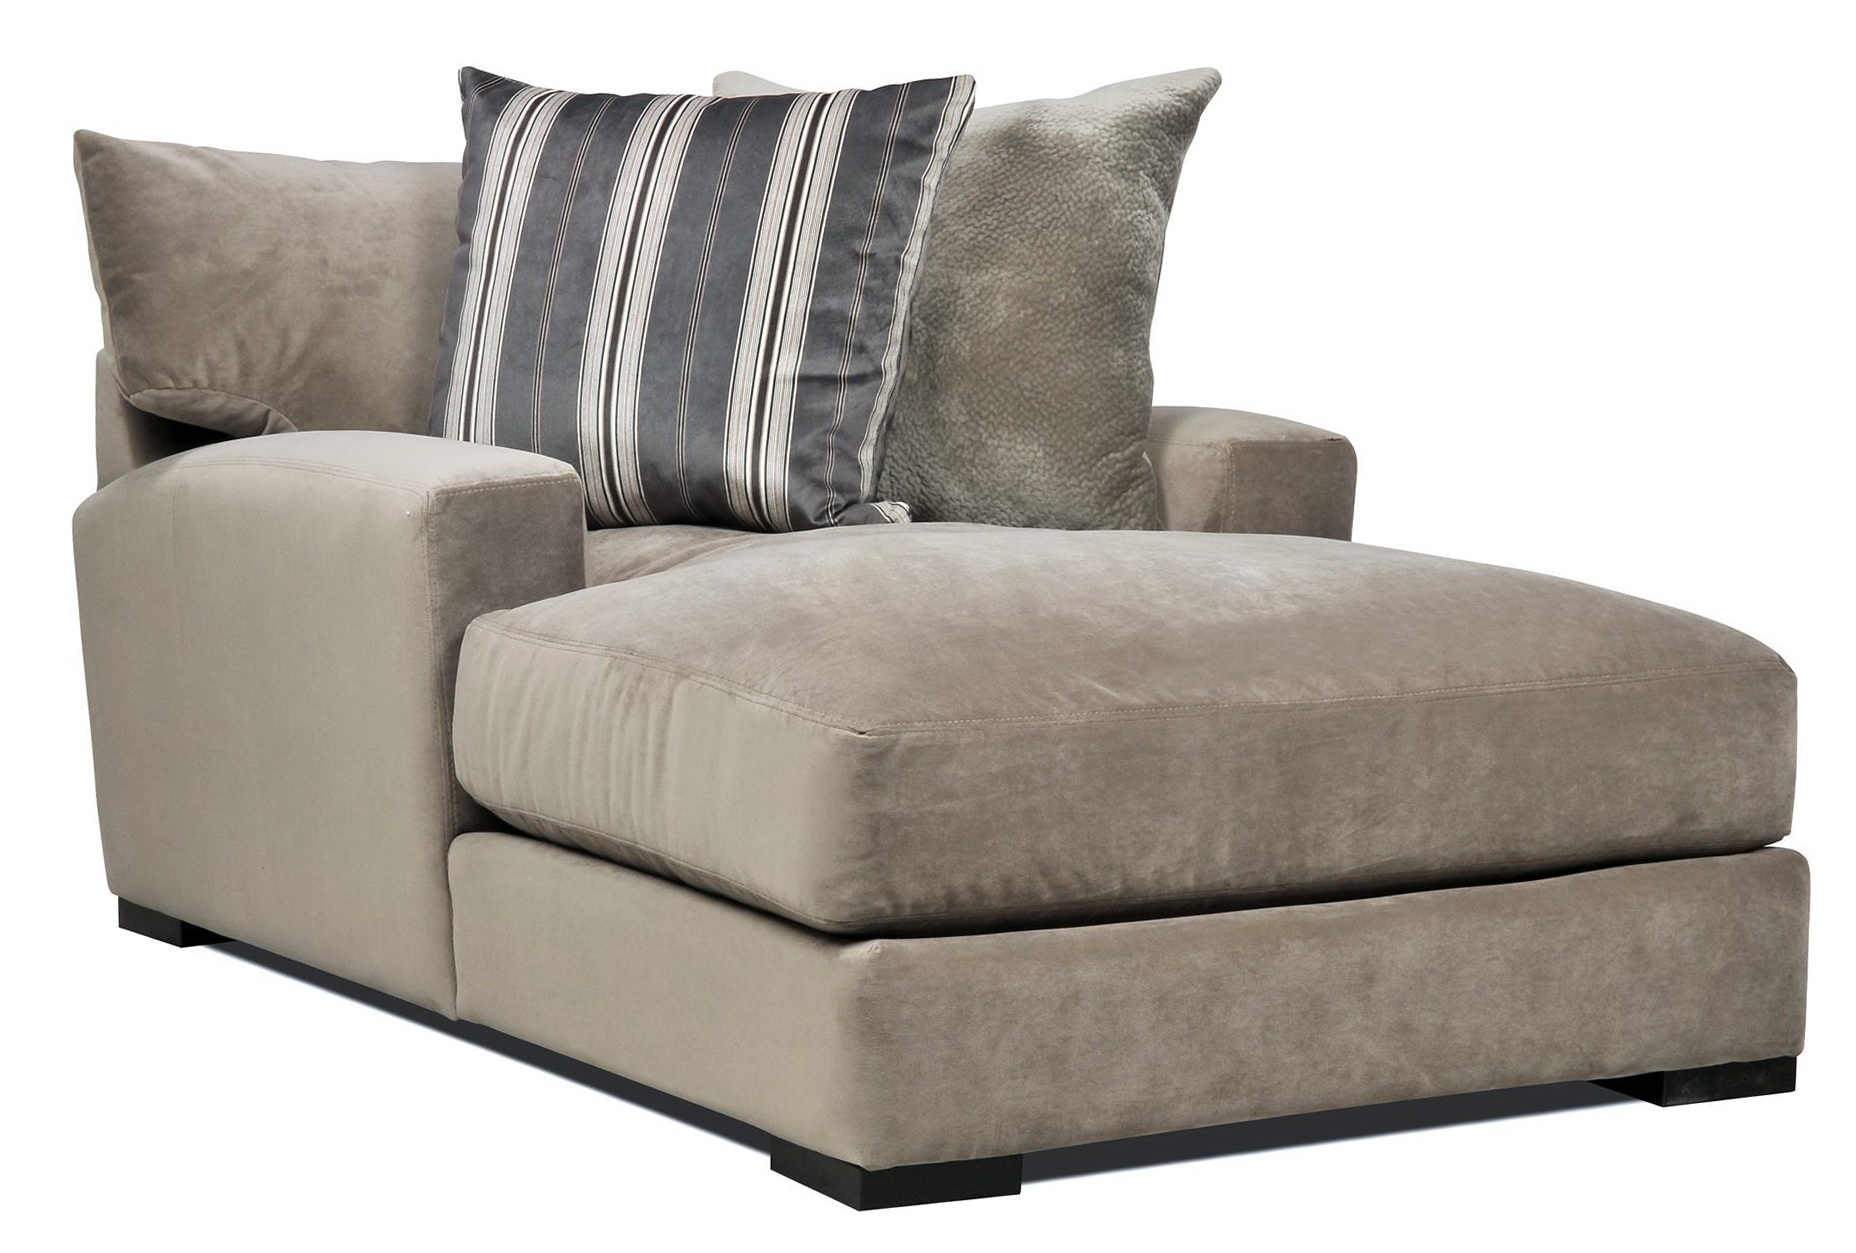 Chaise Lounge Chairs For Two Inside Most Popular Double Wide Chaise Lounge Indoor With 2 Cushions (View 4 of 15)